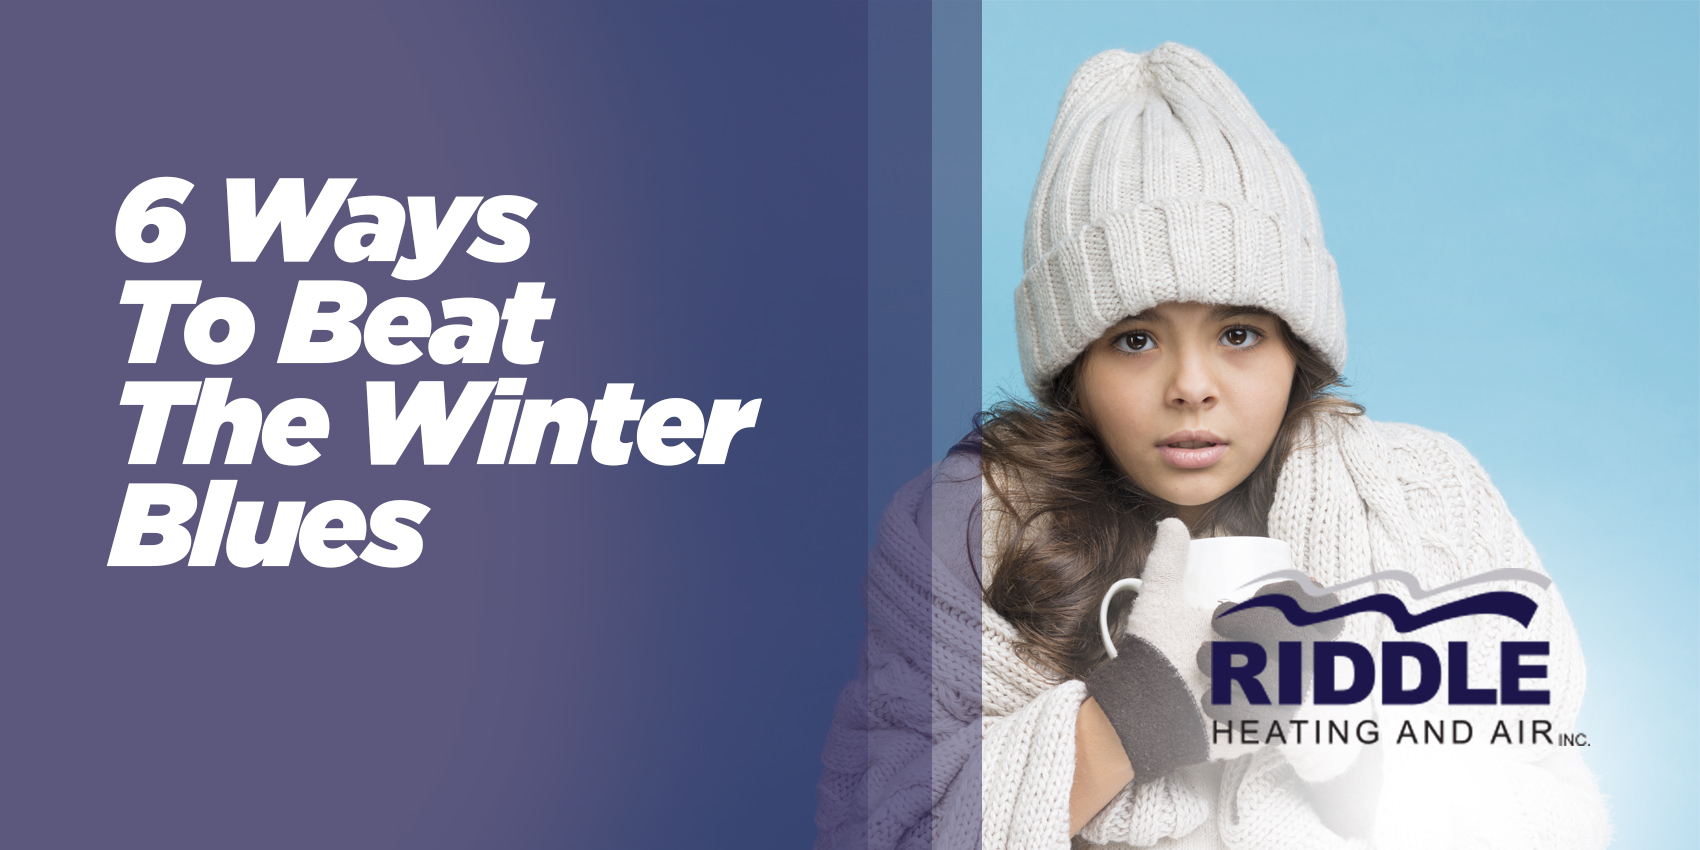 6 Ways To Beat The Winter Blues